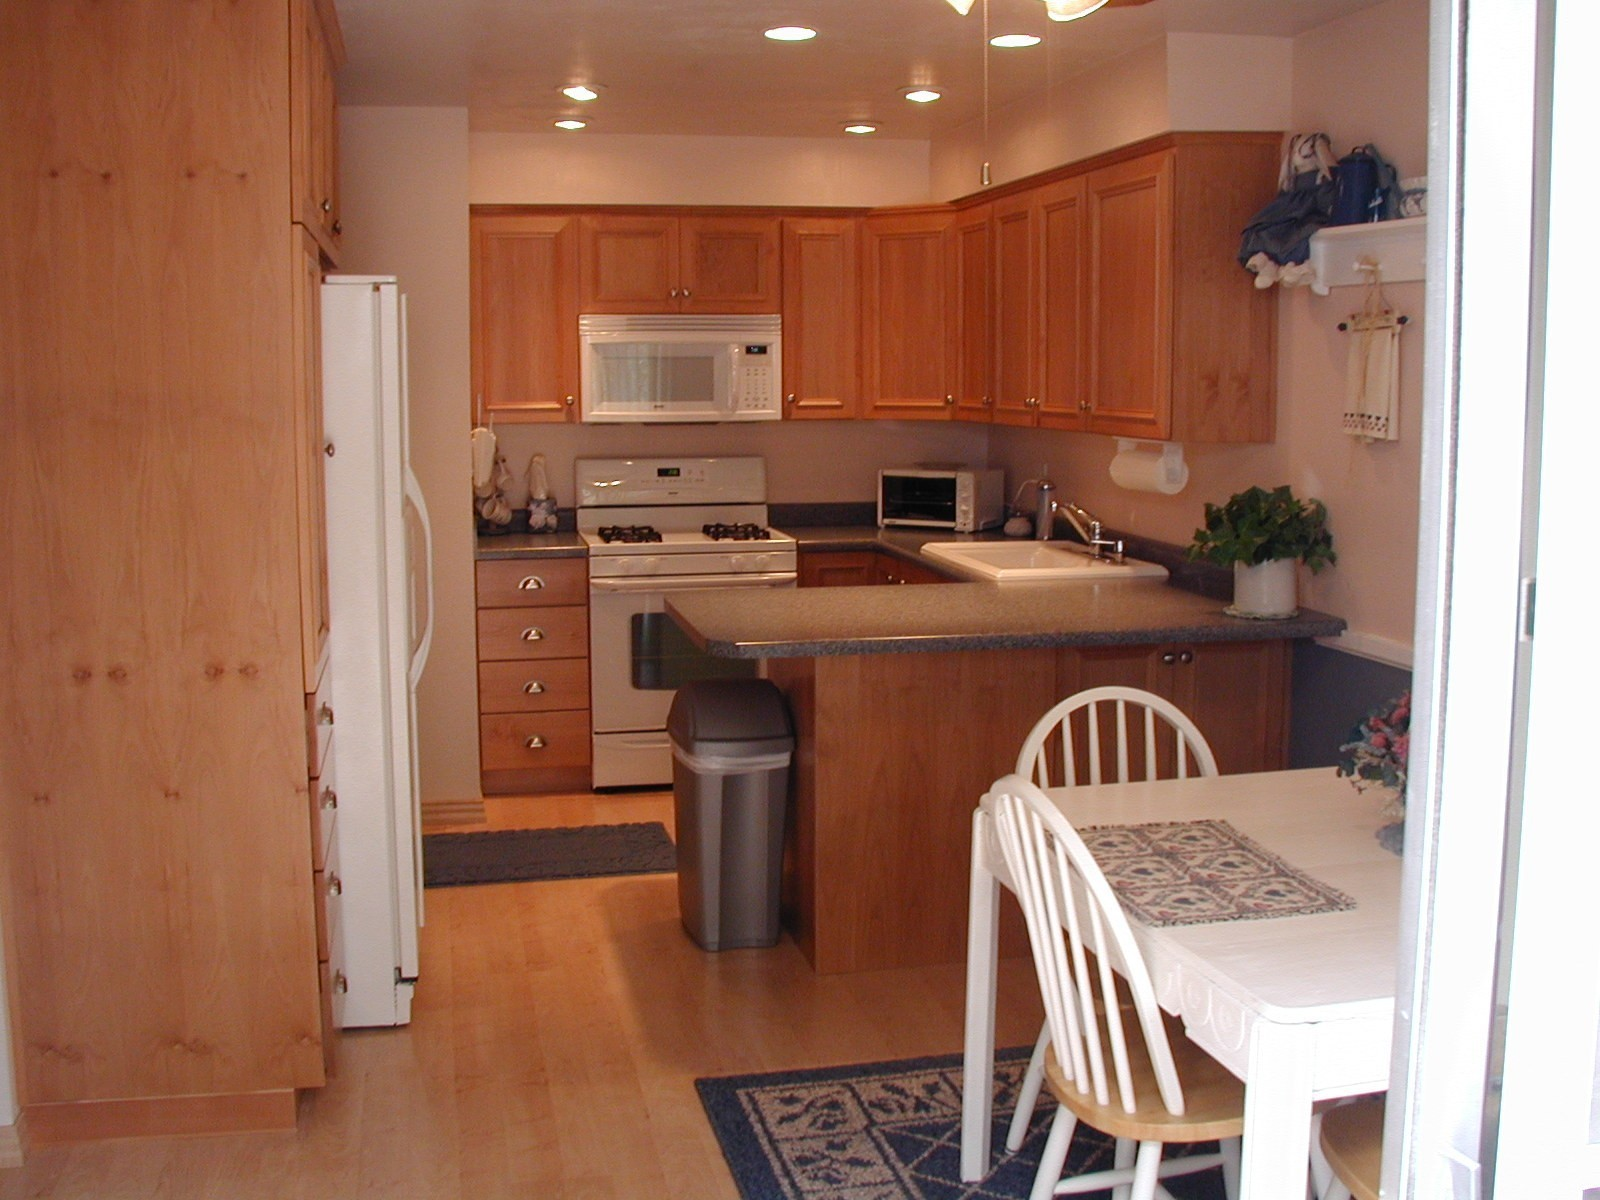 Recessed Lighting For Kitchen Lighting In Kitchen With No Island Floor Paneling Countertops